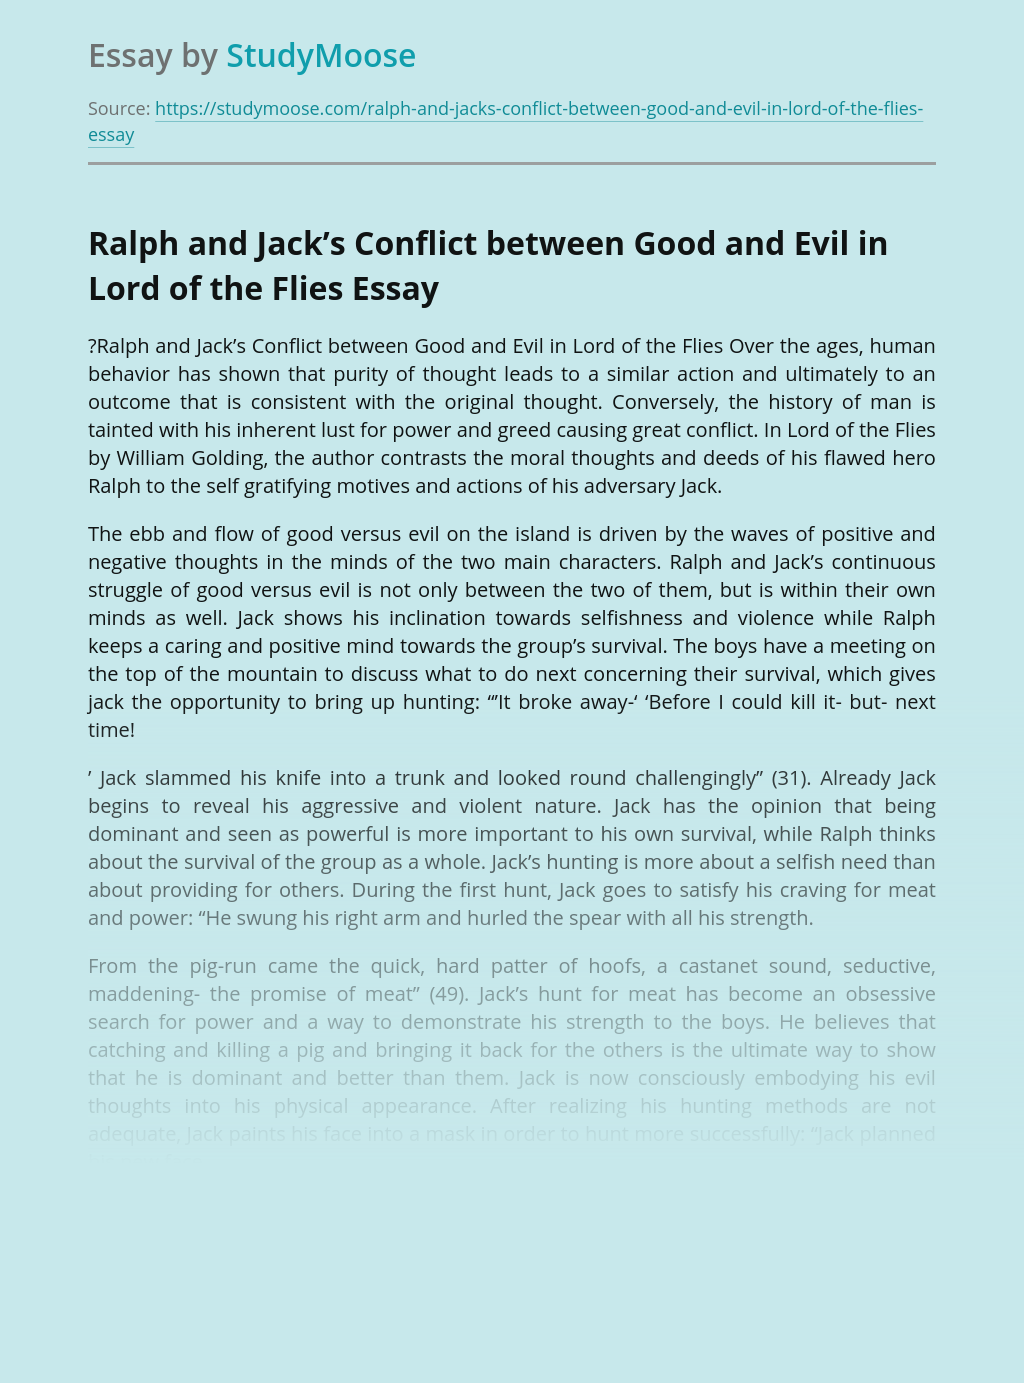 Ralph and Jack's Conflict between Good and Evil in Lord of the Flies